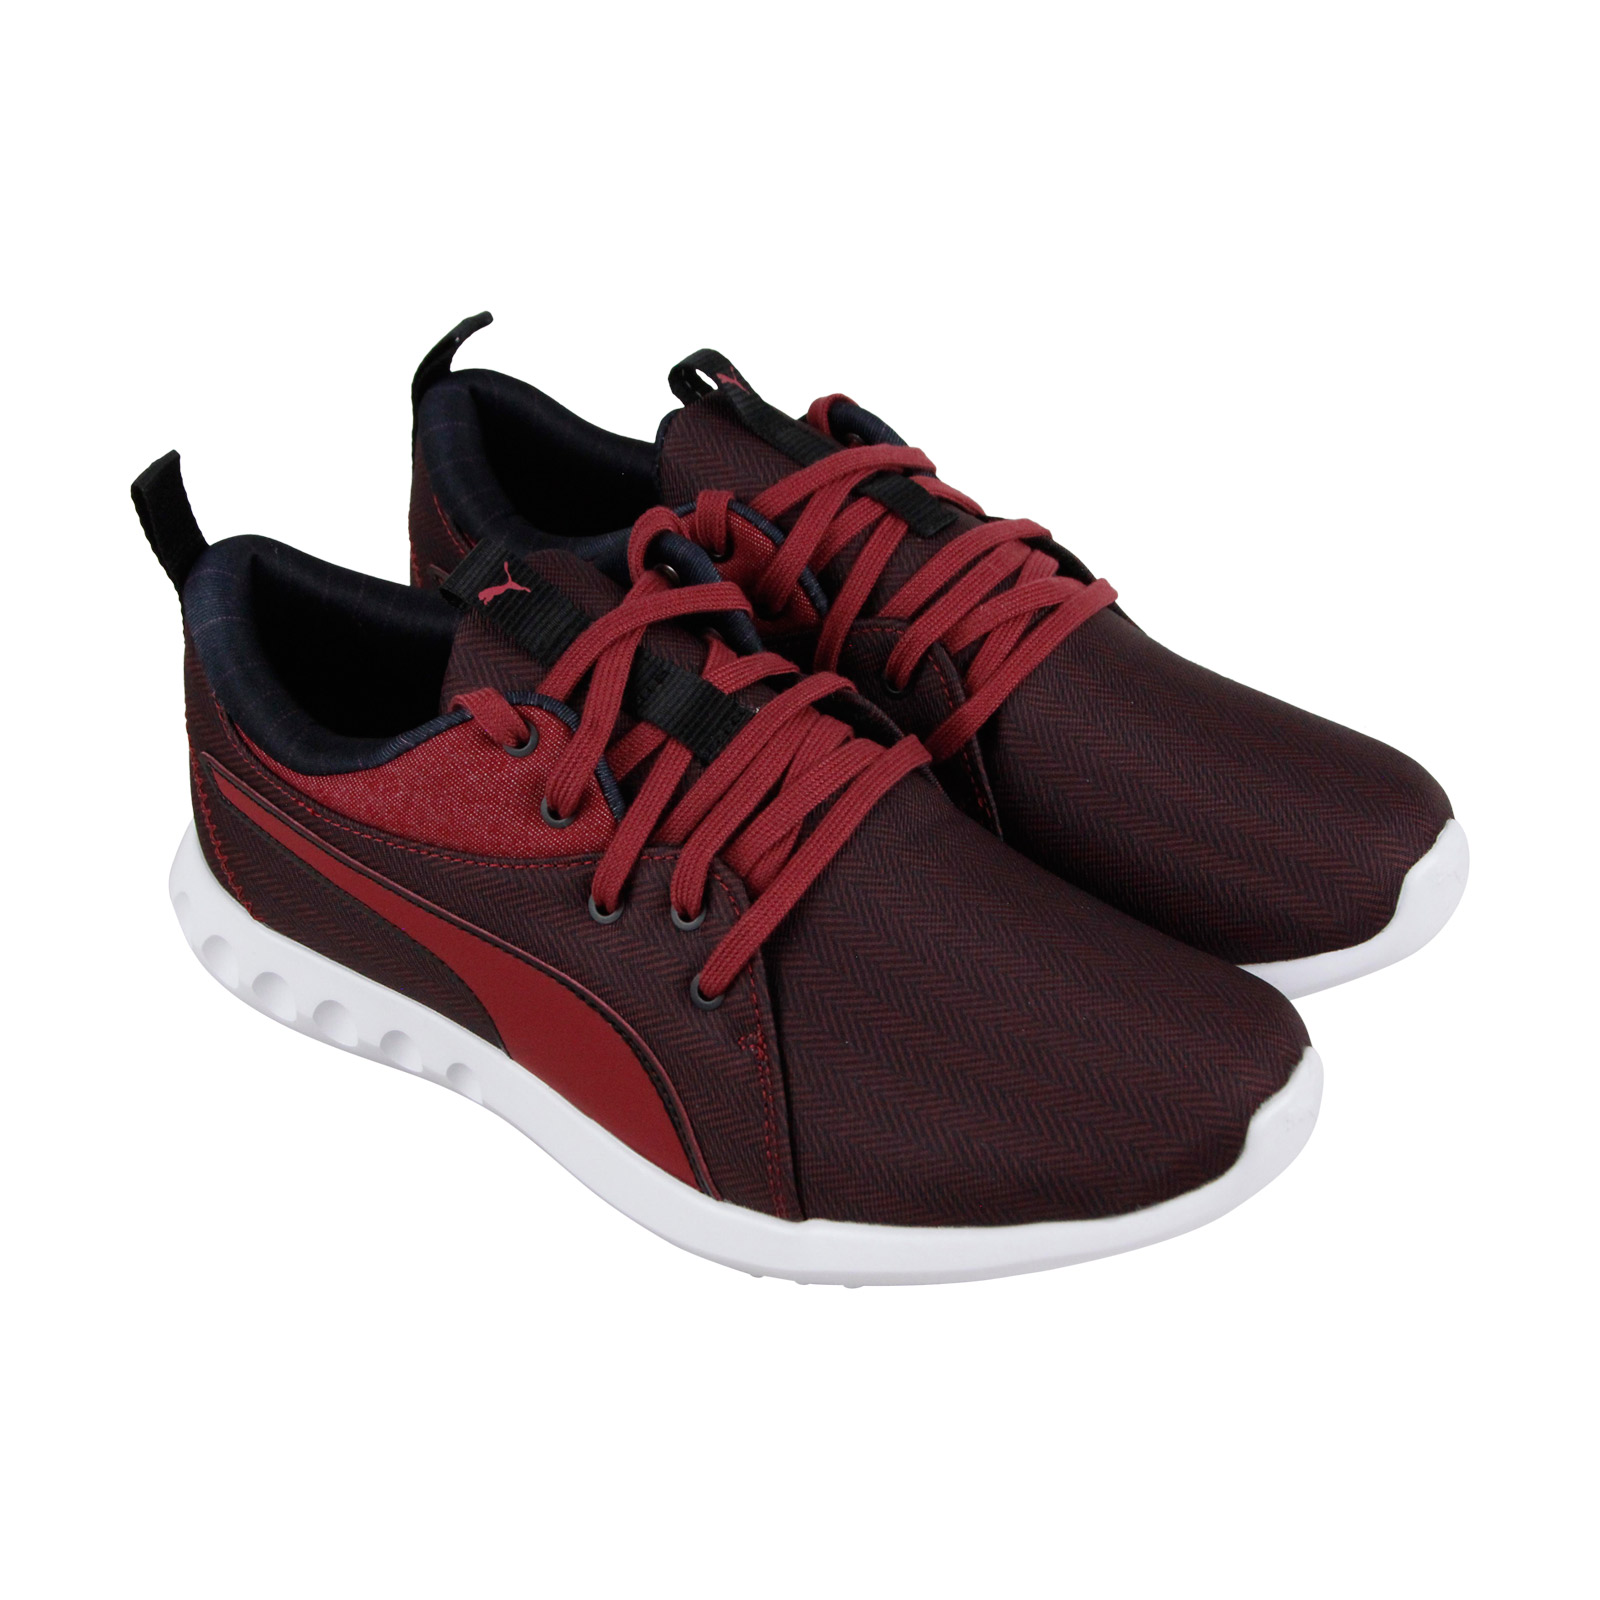 ceeb3384b3cc Puma Carson 2 Menswear Mens Red Textile Low Top Lace Up Sneakers Shoes